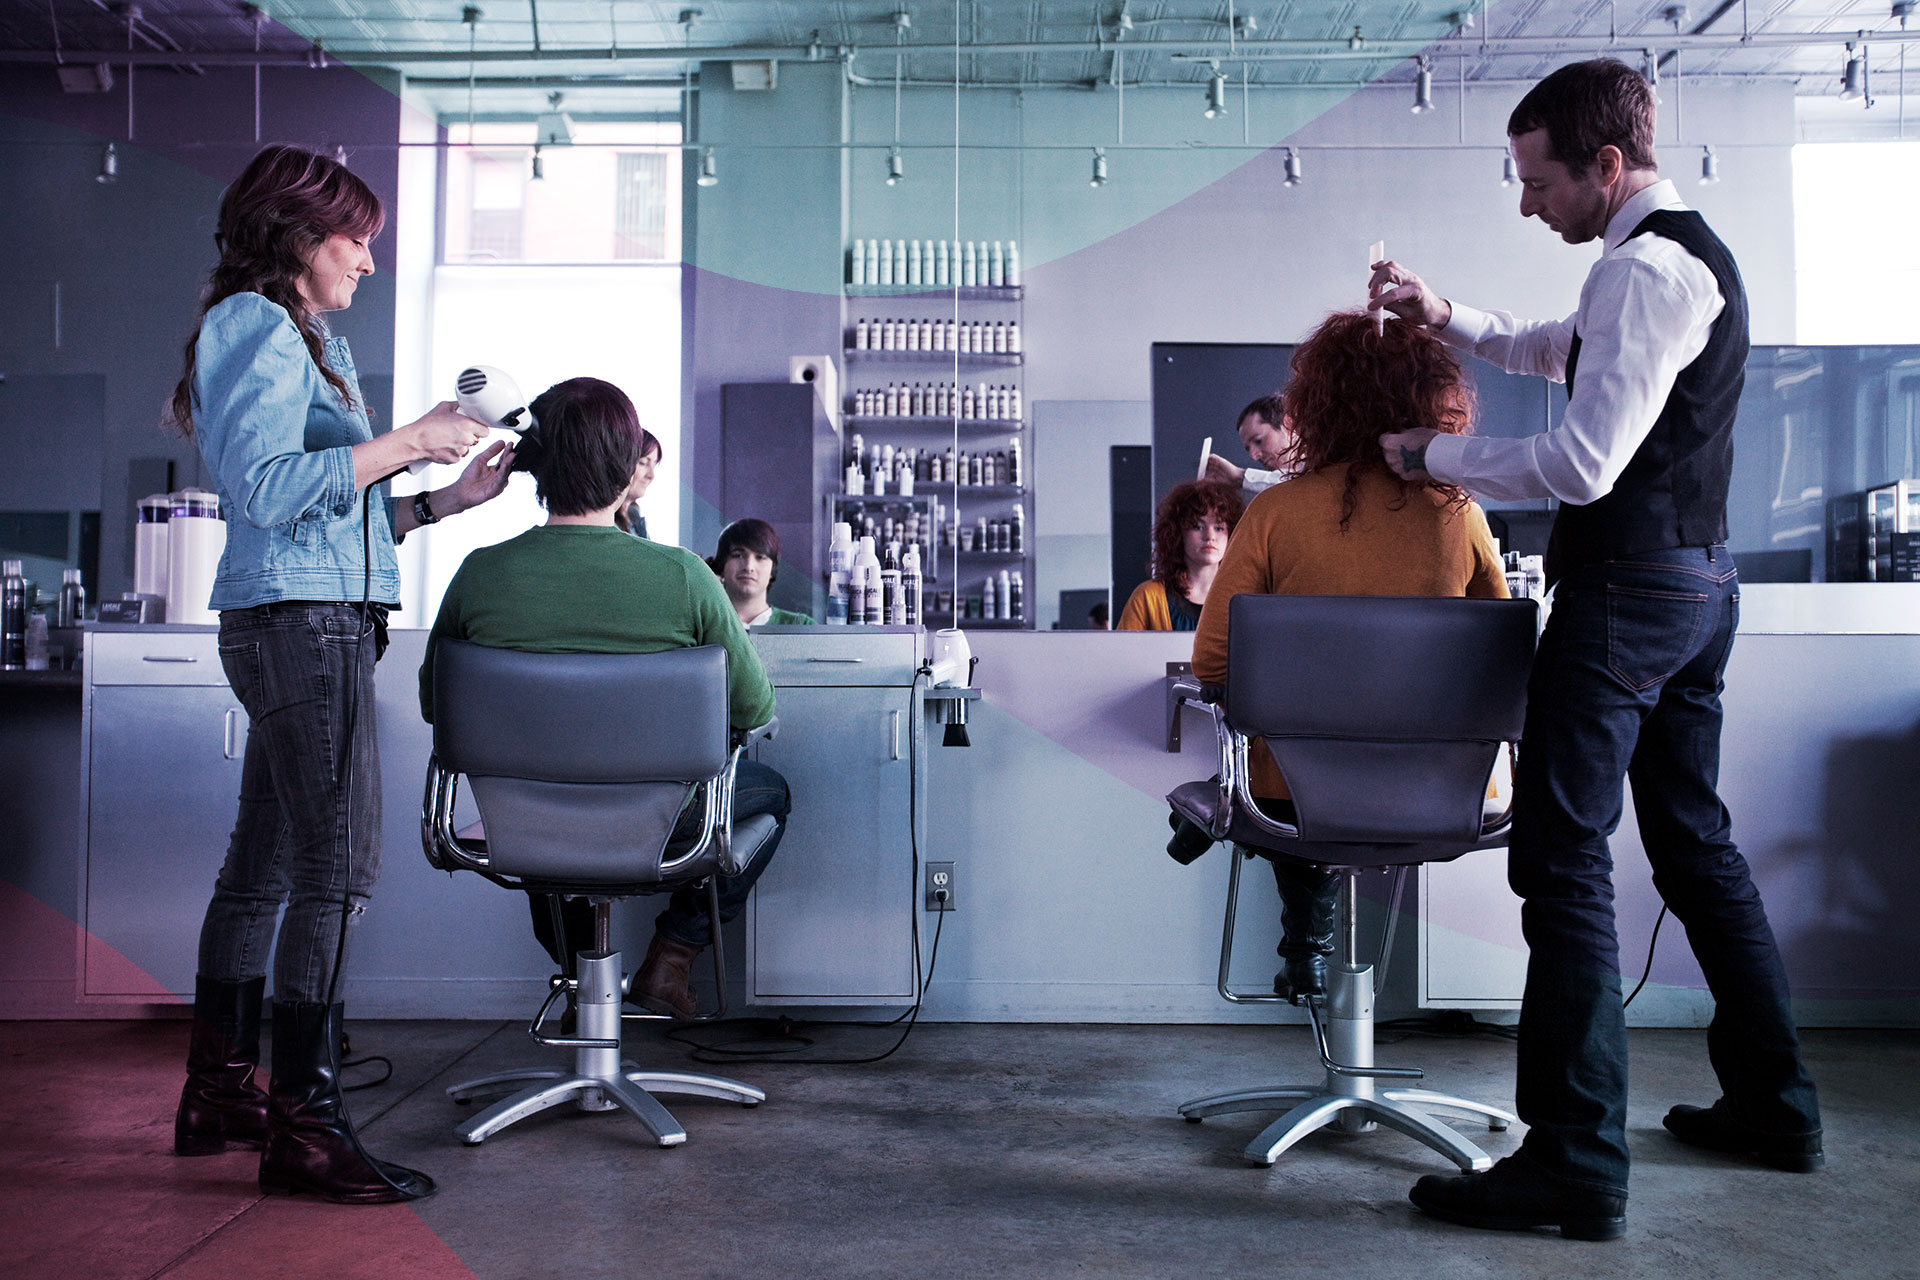 5 Beauty Business Tips to Fast Track Your Salon to a Successful 2021